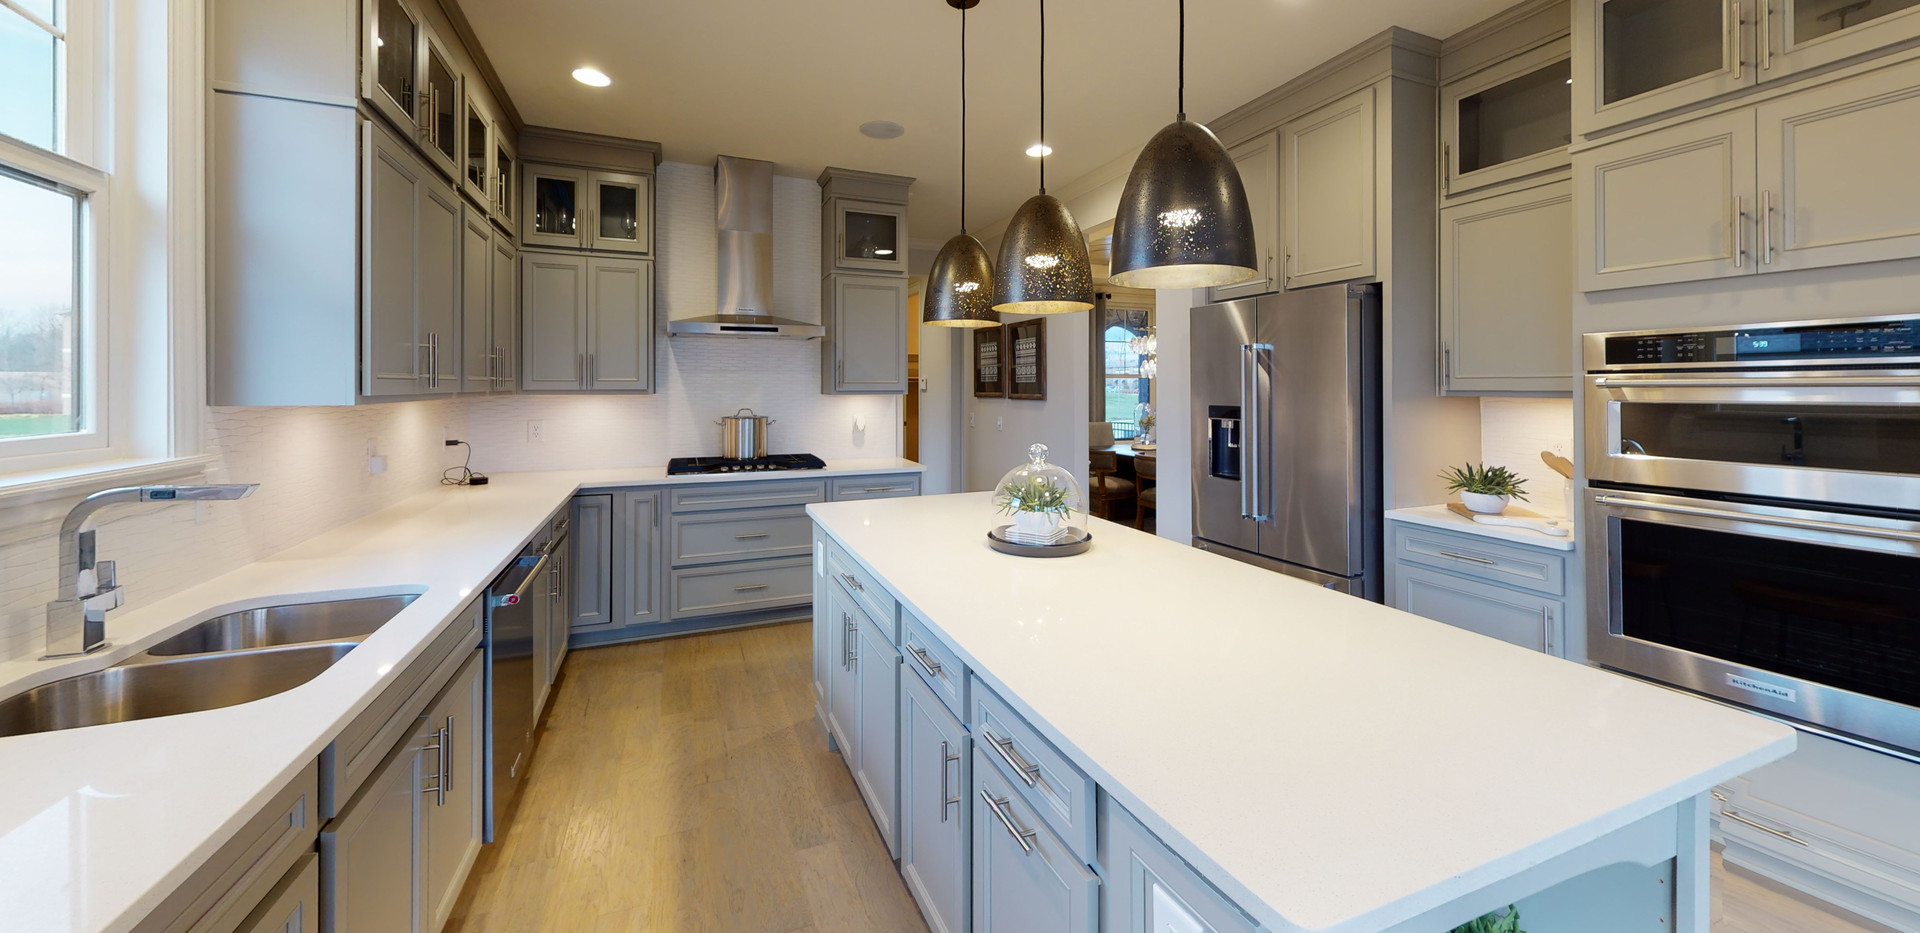 beautiful modern kitchen with prep island, white countertops, and steel appliances